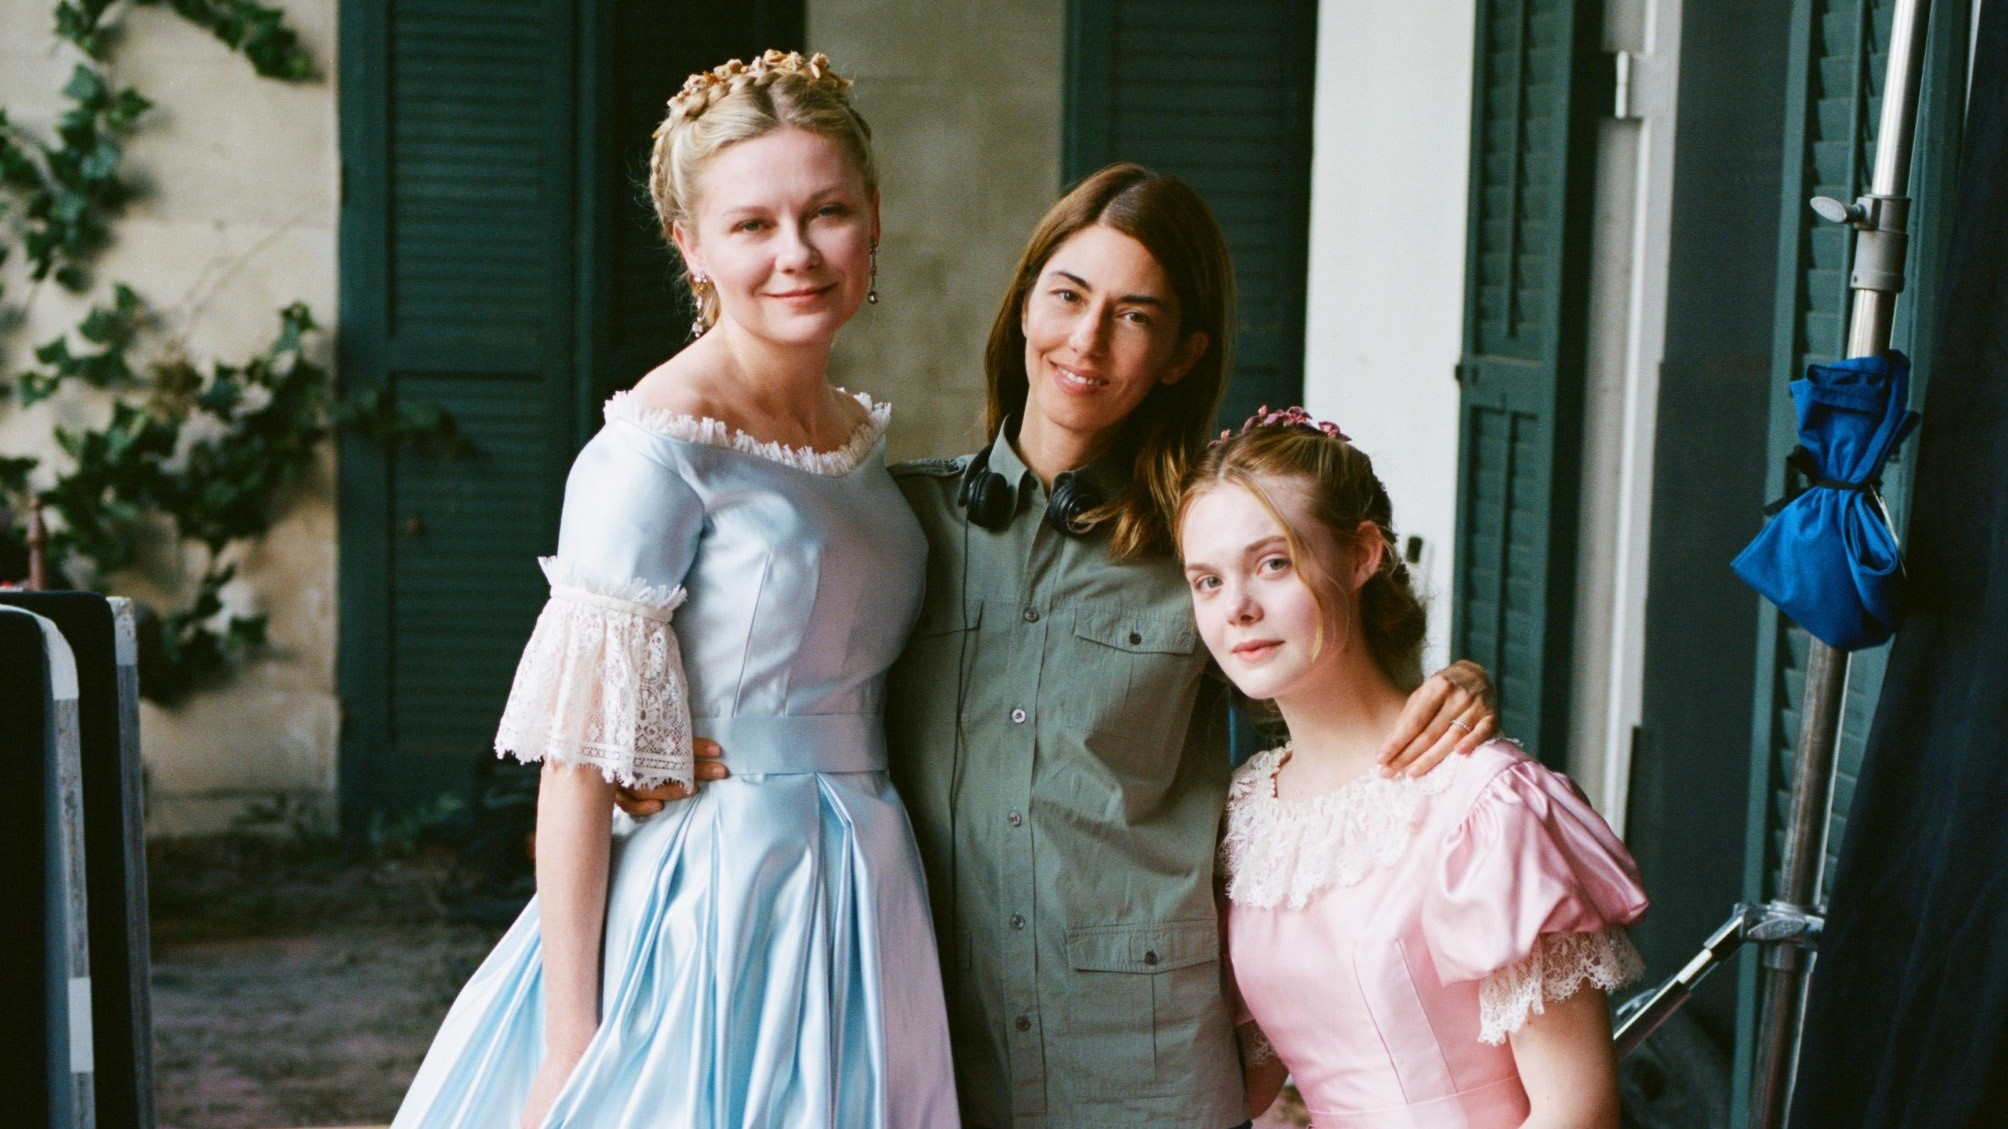 sofia coppola on her unexpectedly gory southern gothic